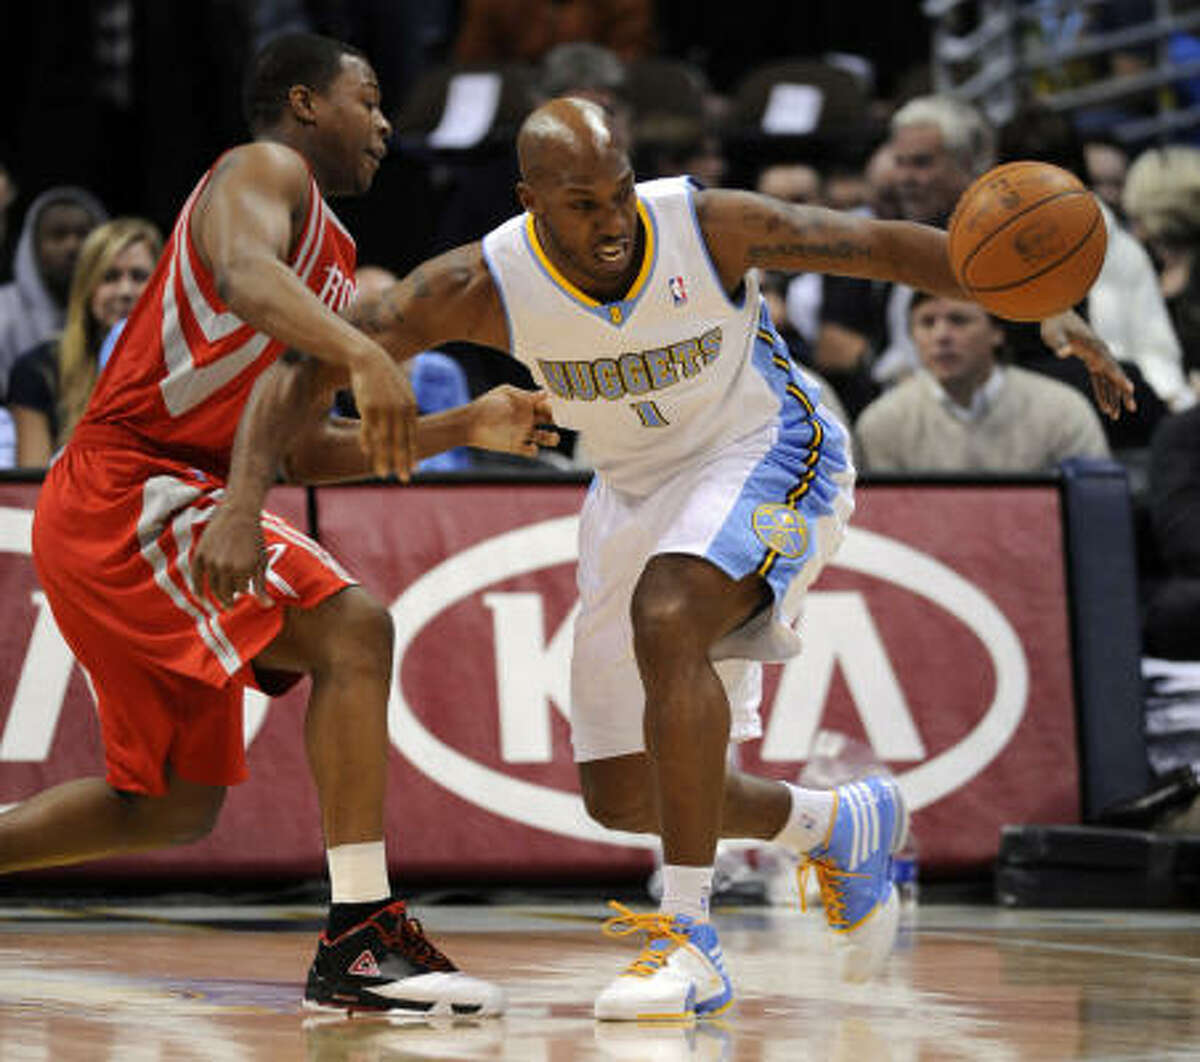 Nuggets guard Chauncey Billups (1) loses control of the ball against Rockets guard Kyle Lowry (7).